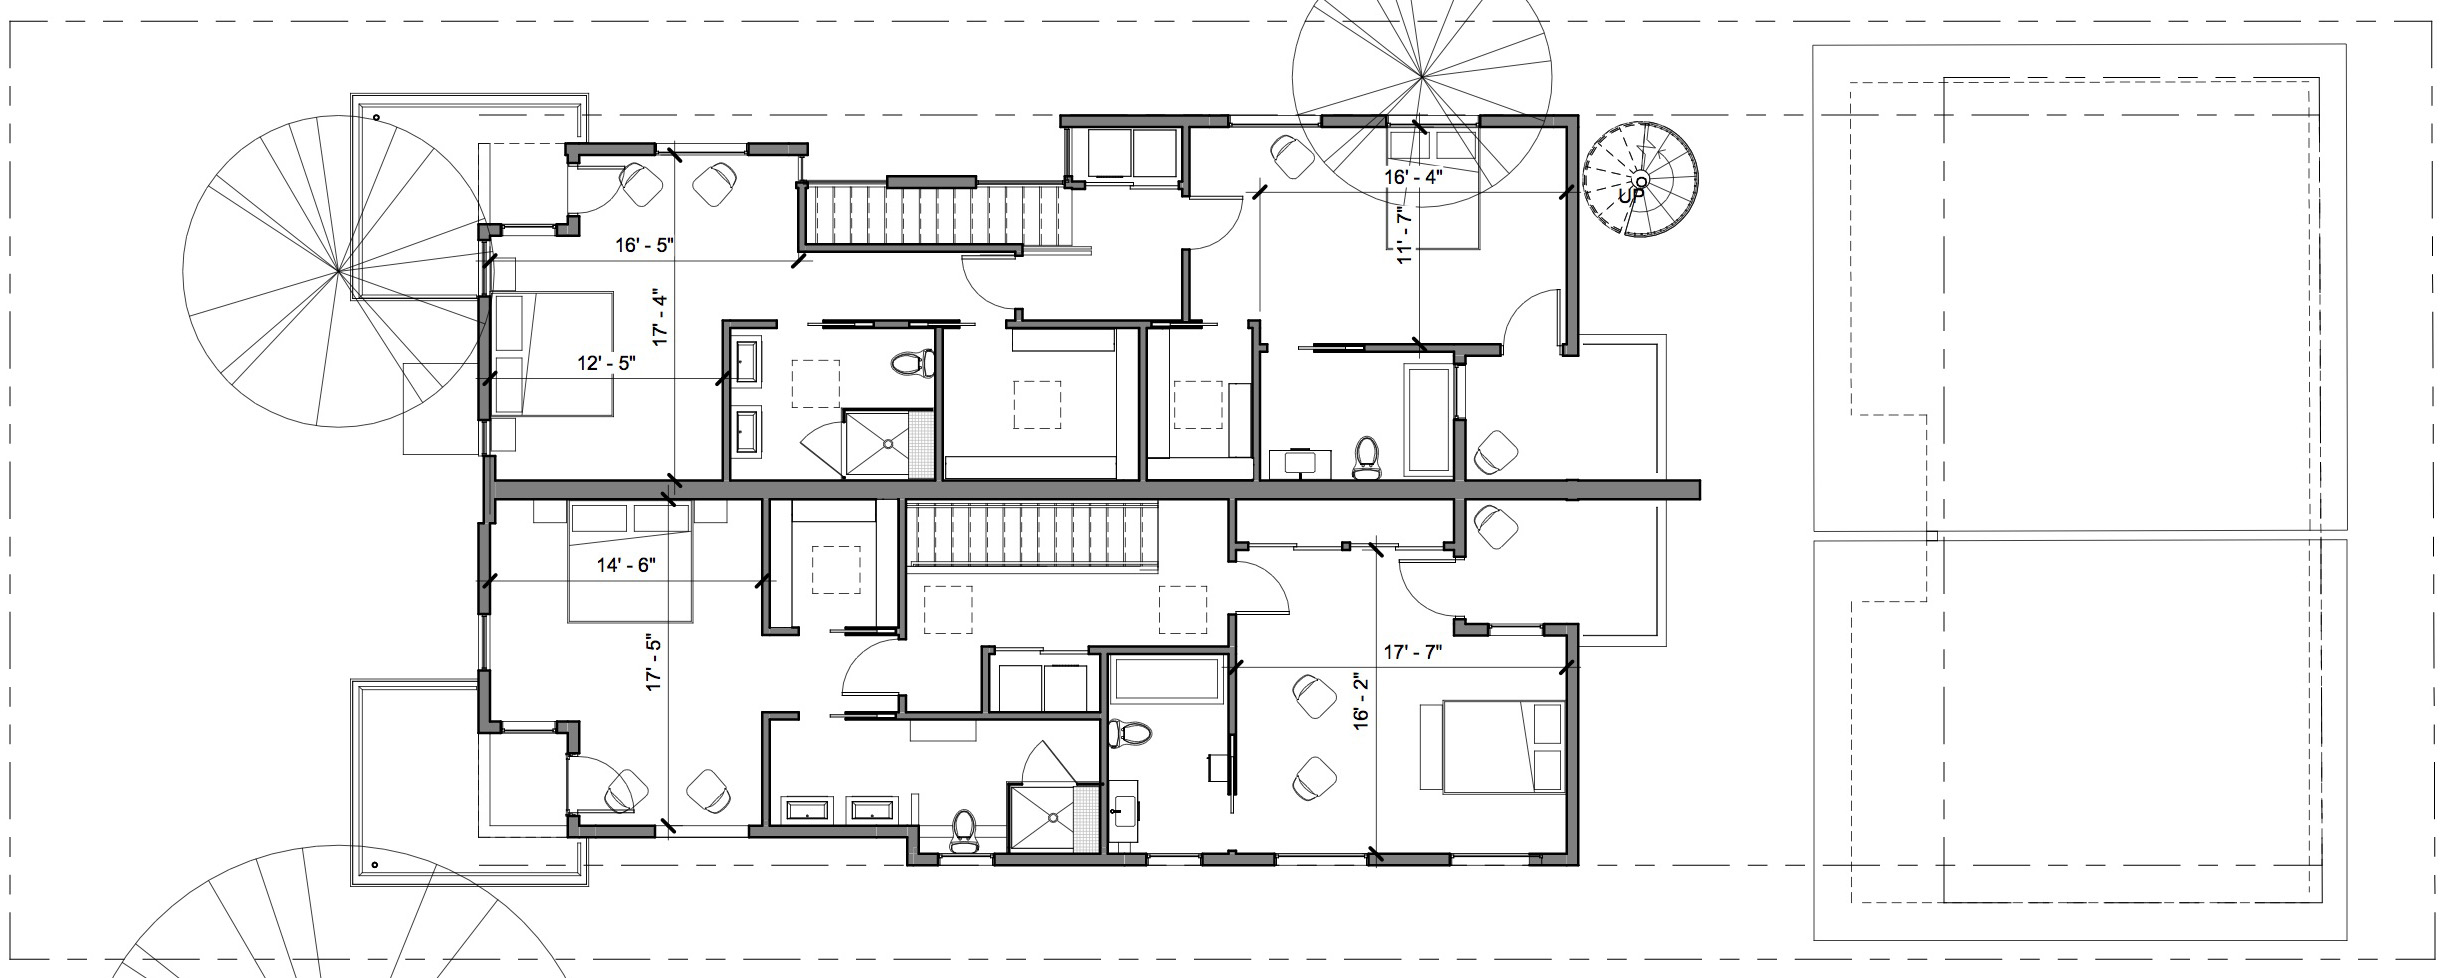 Sherman Duplex 2nd Floor Plan Draft.jpg